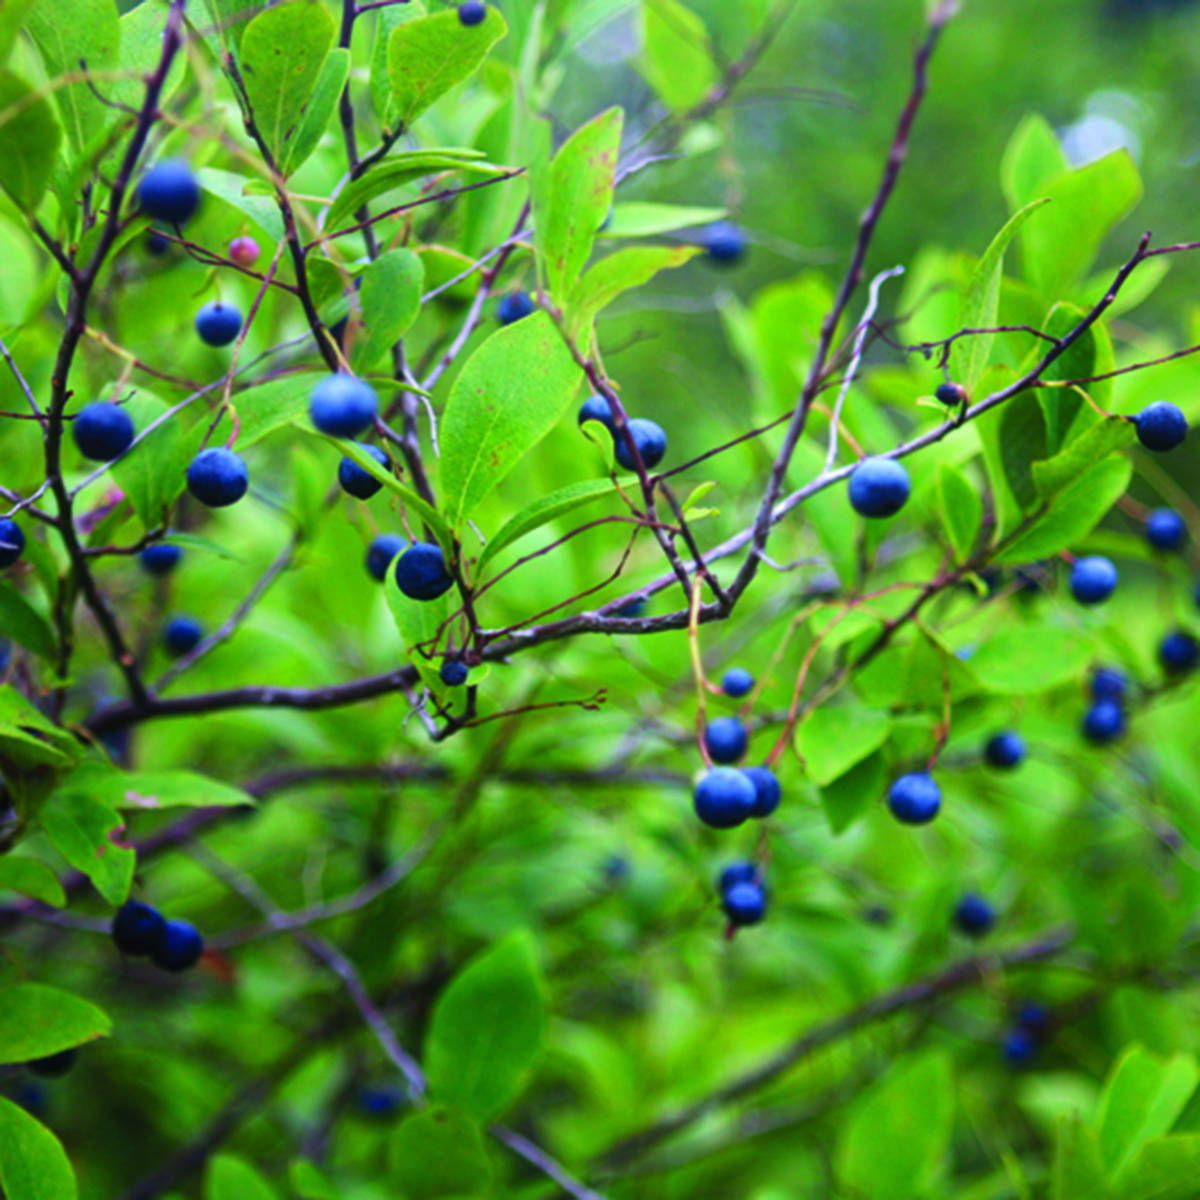 A photograph of wild blueberries